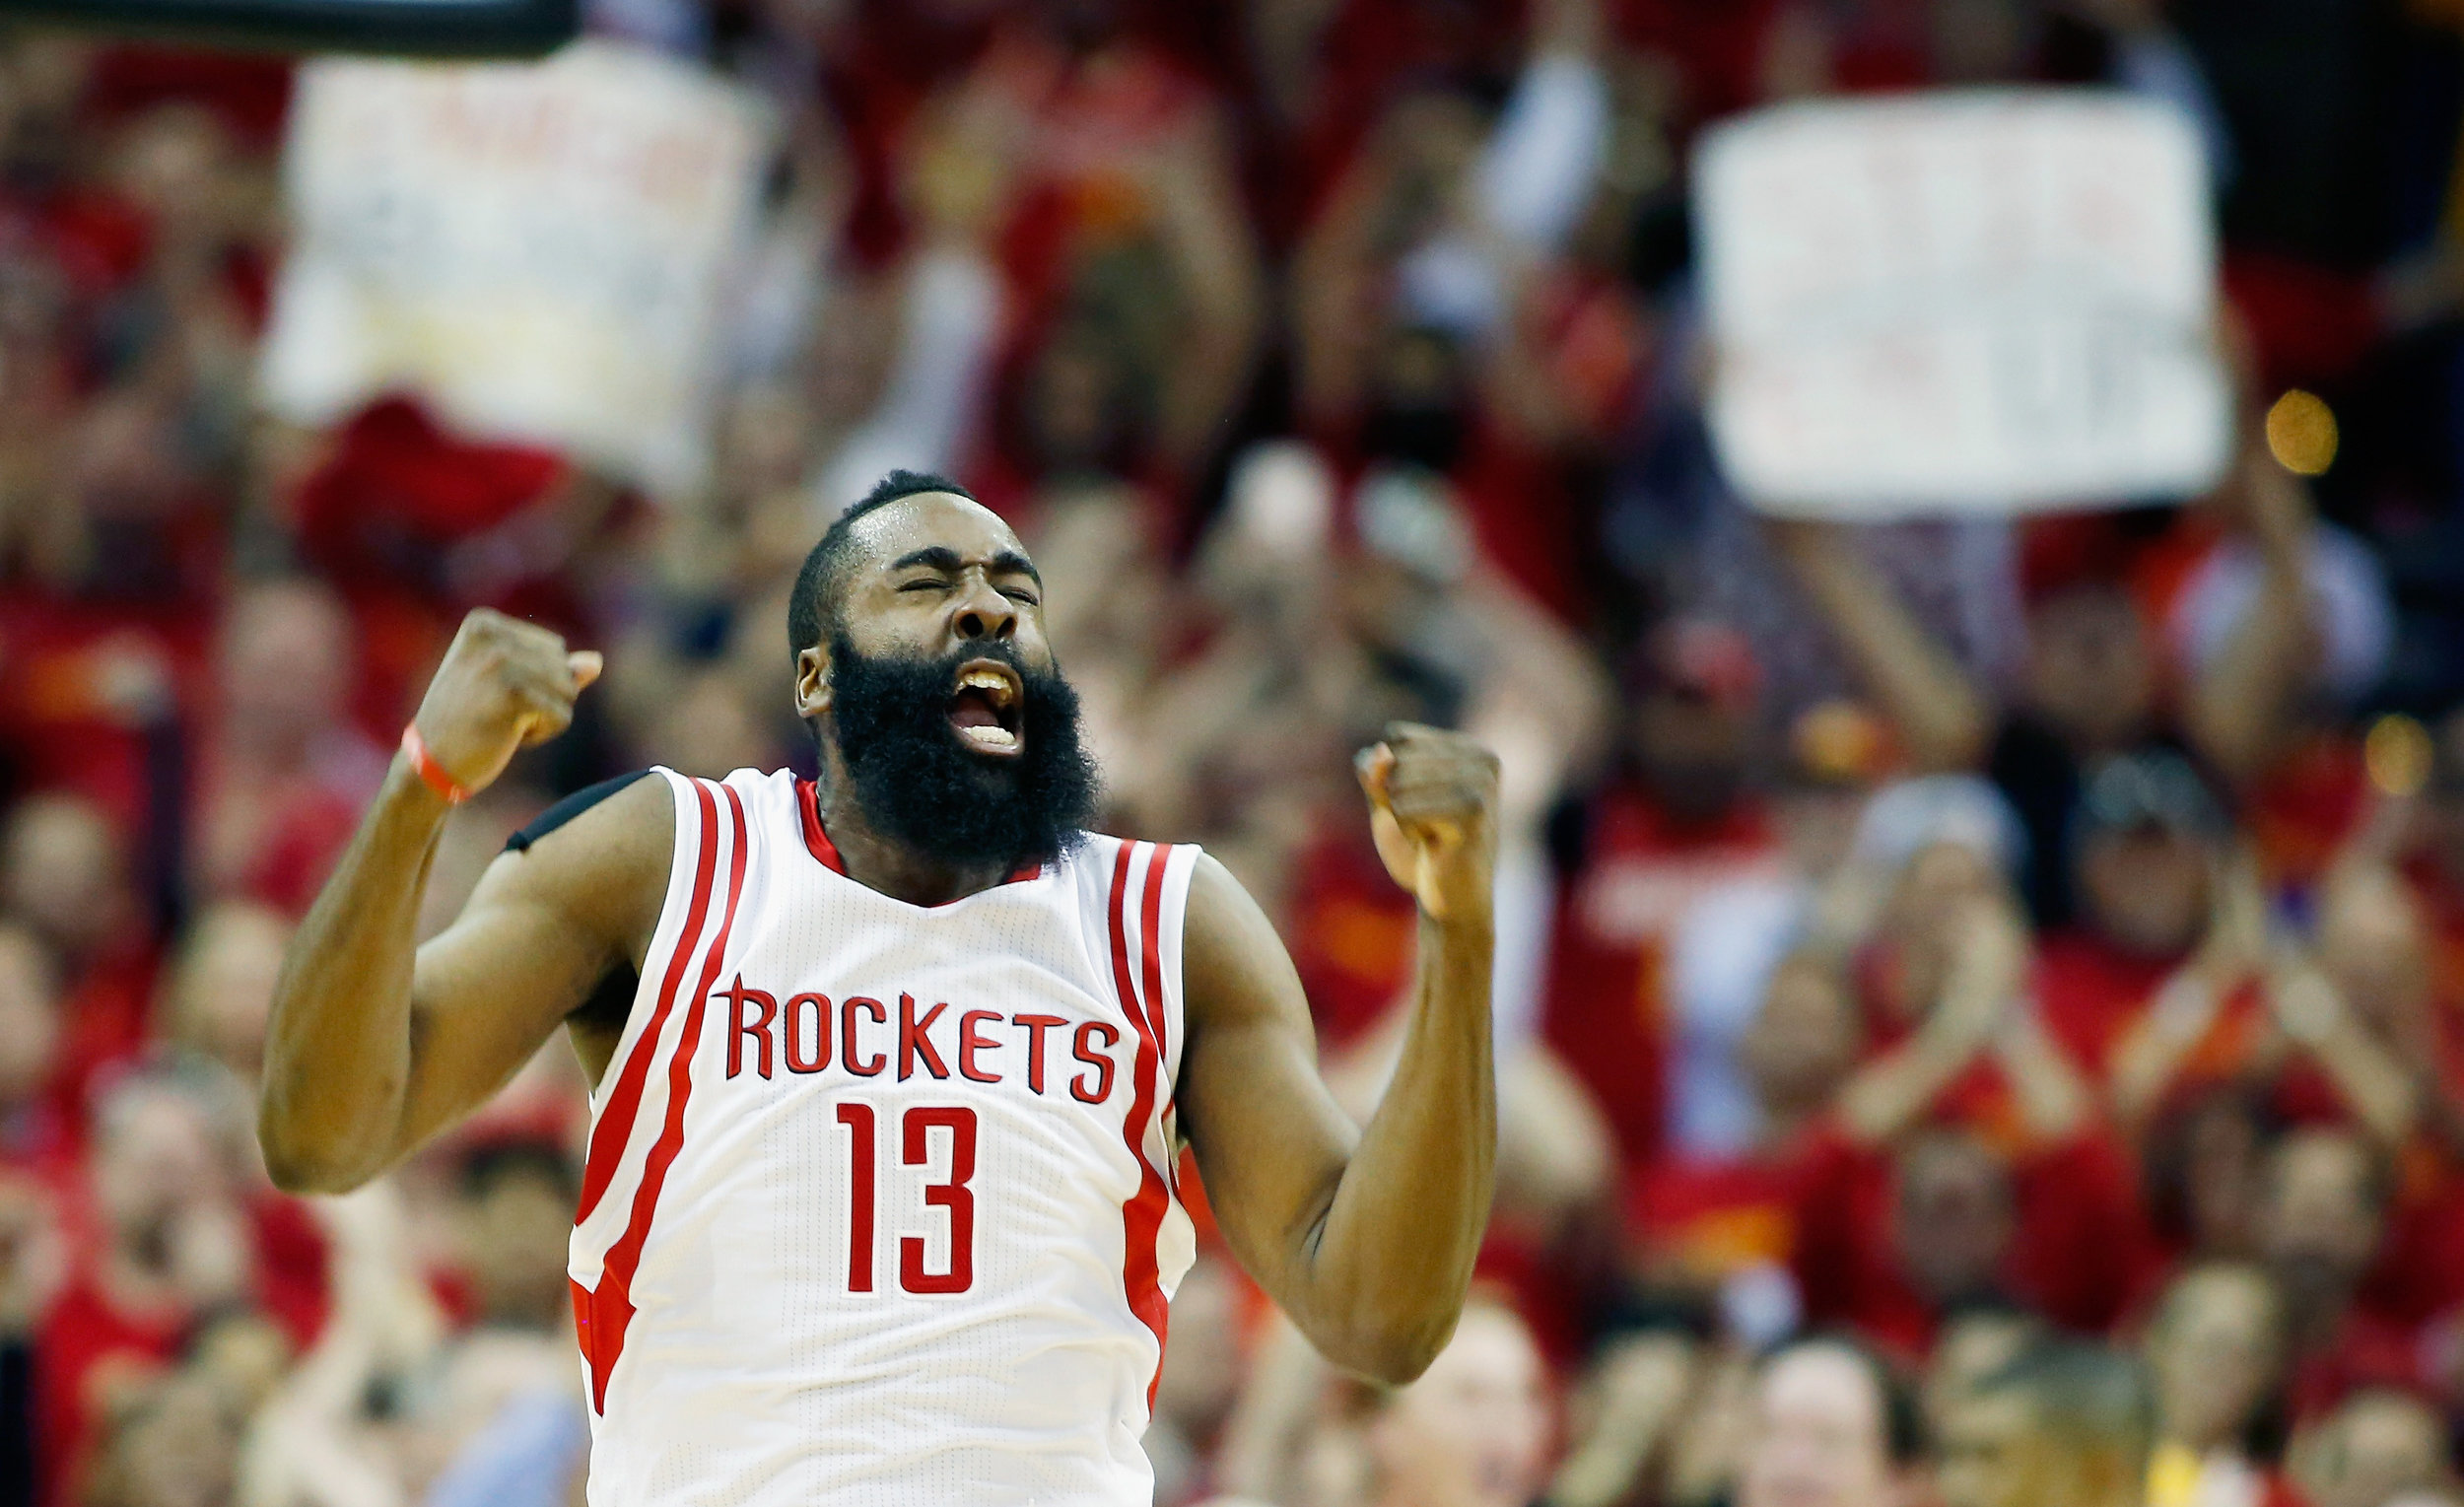 Is it time to apply James Harden and the Rockets' offensive principals to fuel your business?